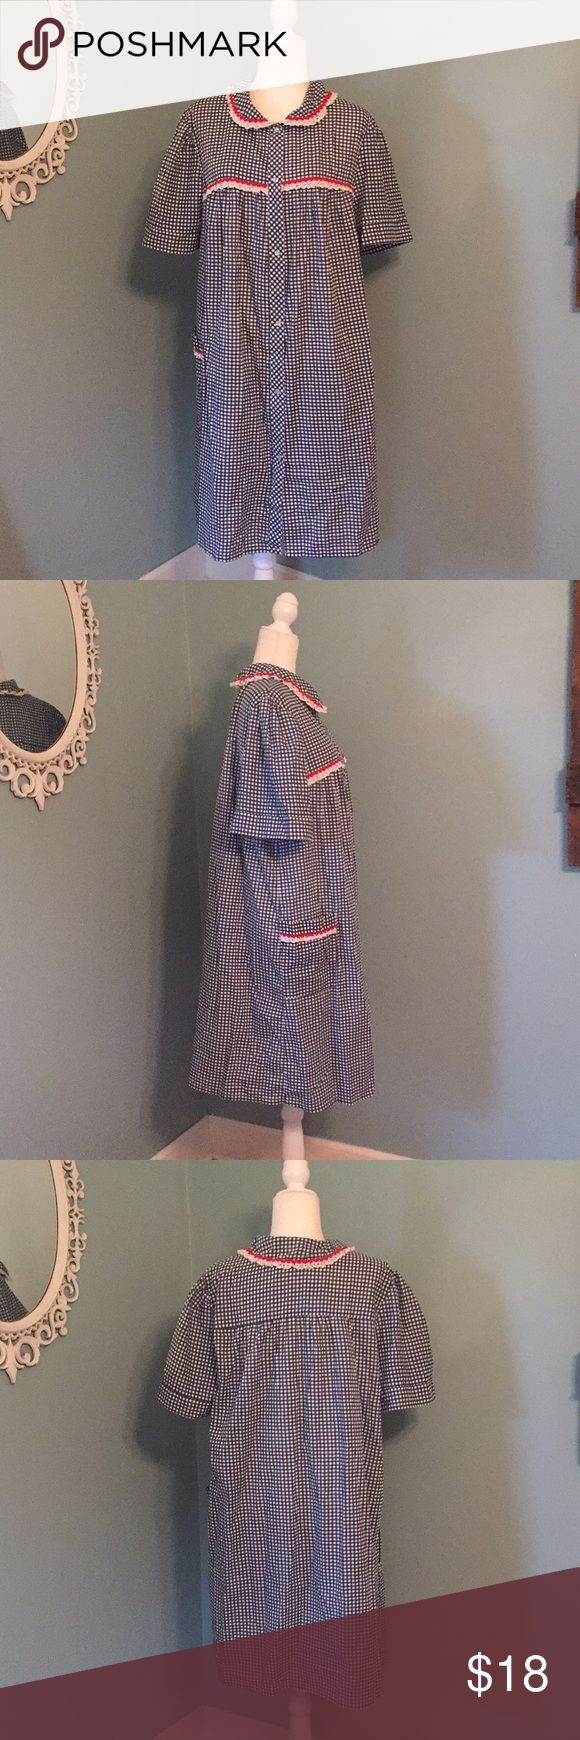 Retro Housecoat Blue and white check housecoast with red ric rac and white eyelet trim around the collar and on the two front pockets. Snaps up the front. This is labeled as a 2X, but runs really small. I wear a large and 12/14 and this fits me well. Ashley Taylor Intimates Intimates & Sleepwear Robes